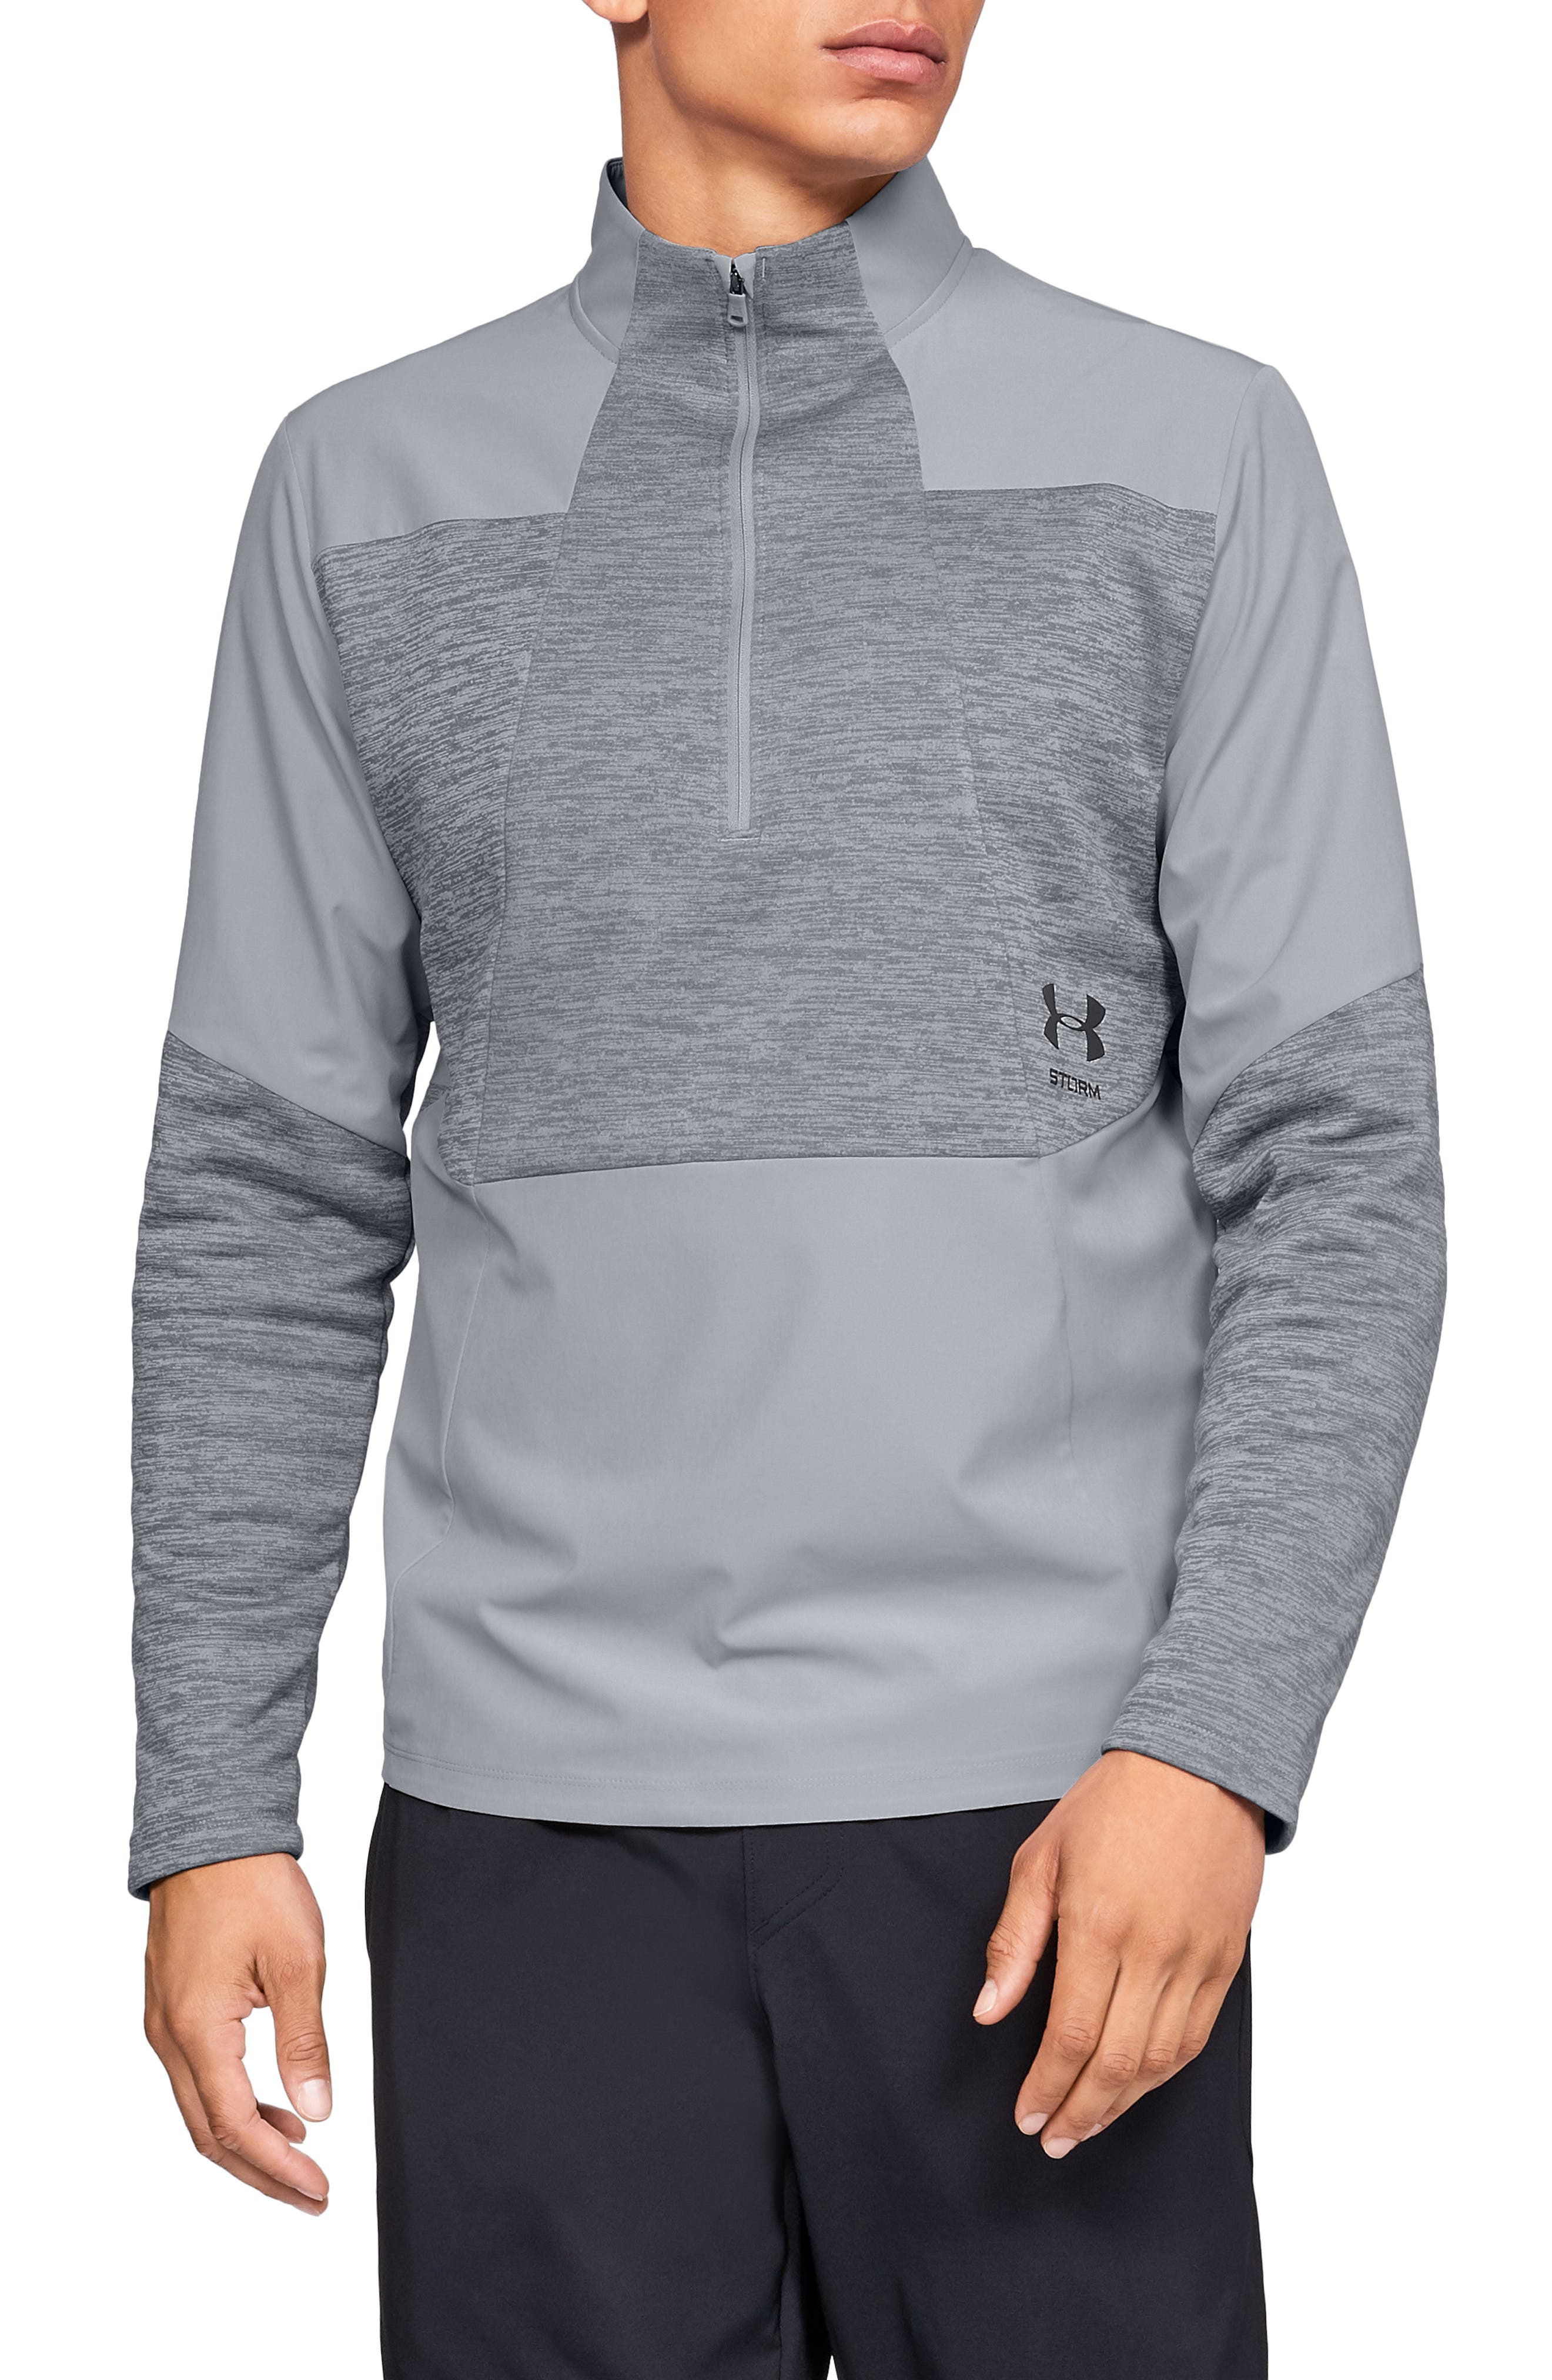 UNDER ARMOUR Storm Cyclone Water Repellent Quarter Zip Pullover, Main, color, OVERCAST GREY/ BLACK